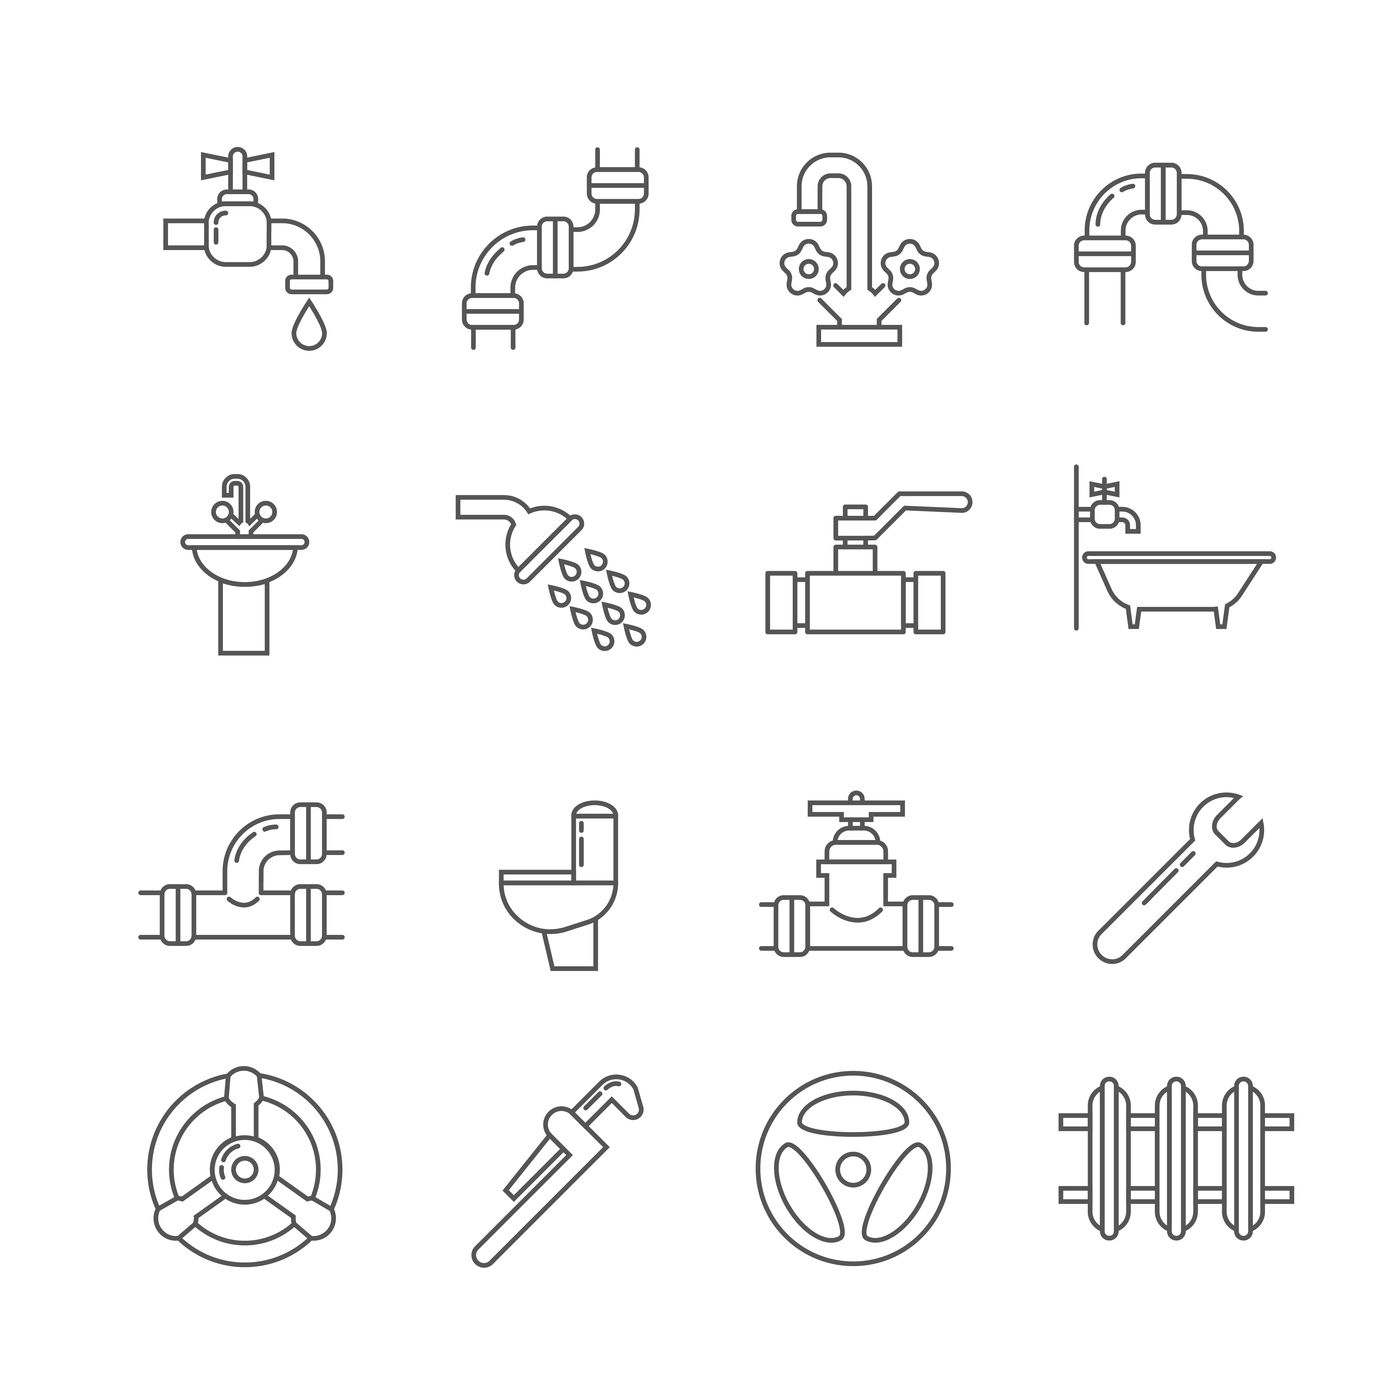 Plumbing, sewerage, pipe, faucet thin line vector icons